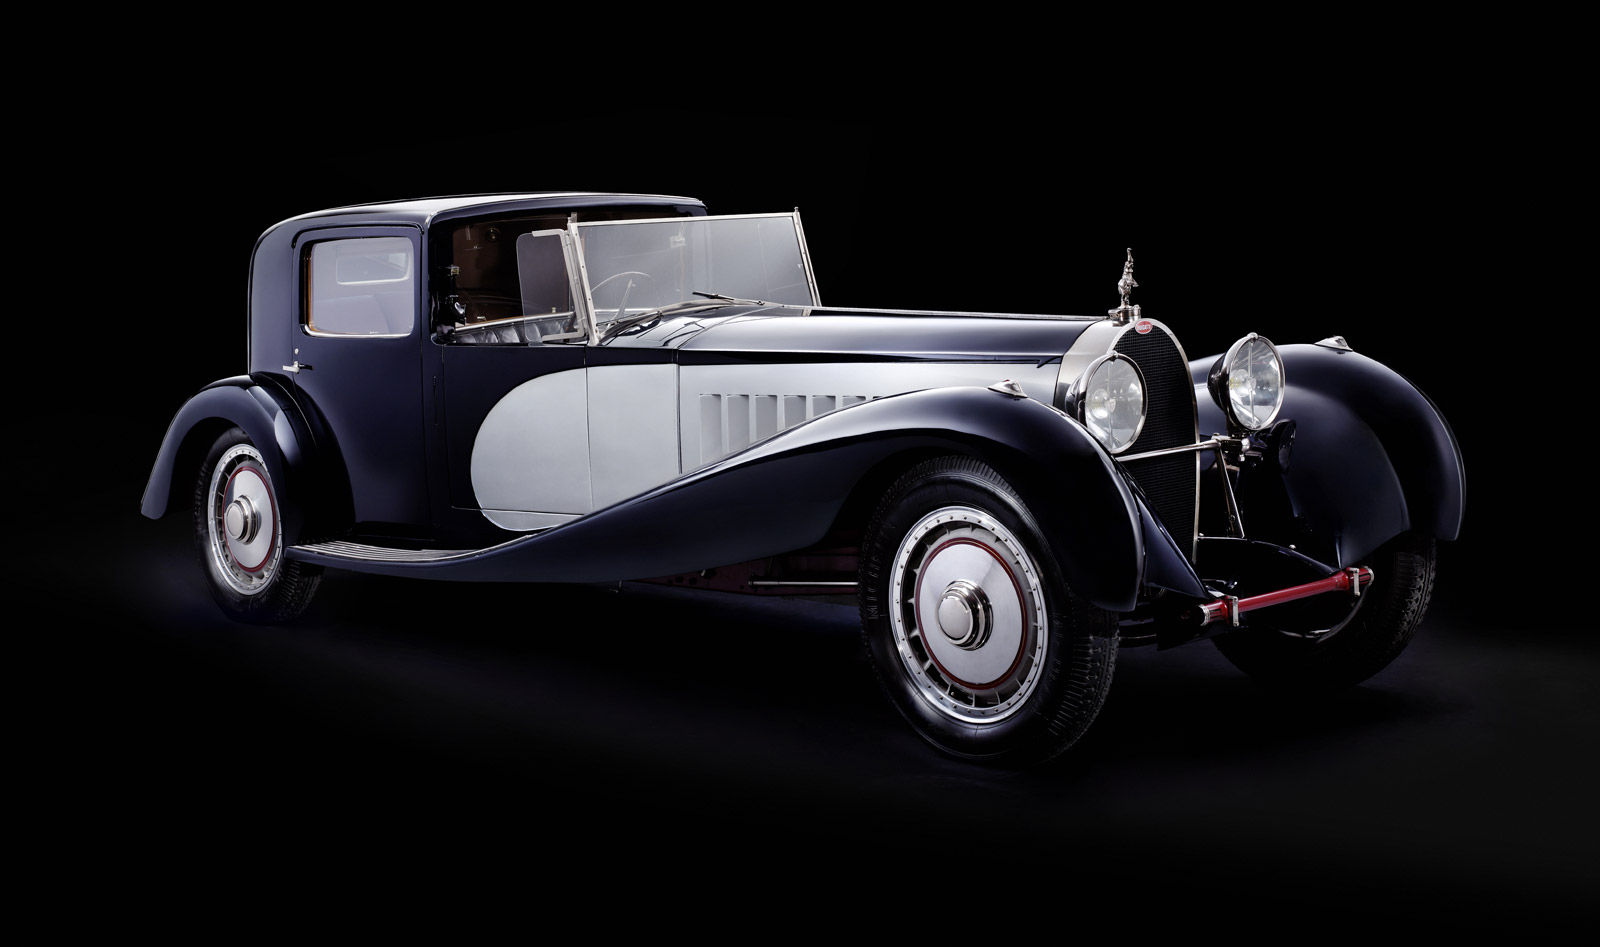 Royal Royce Car Hd Wallpaper Now There Are Seven Or Maybe Nine Bugatti Royale